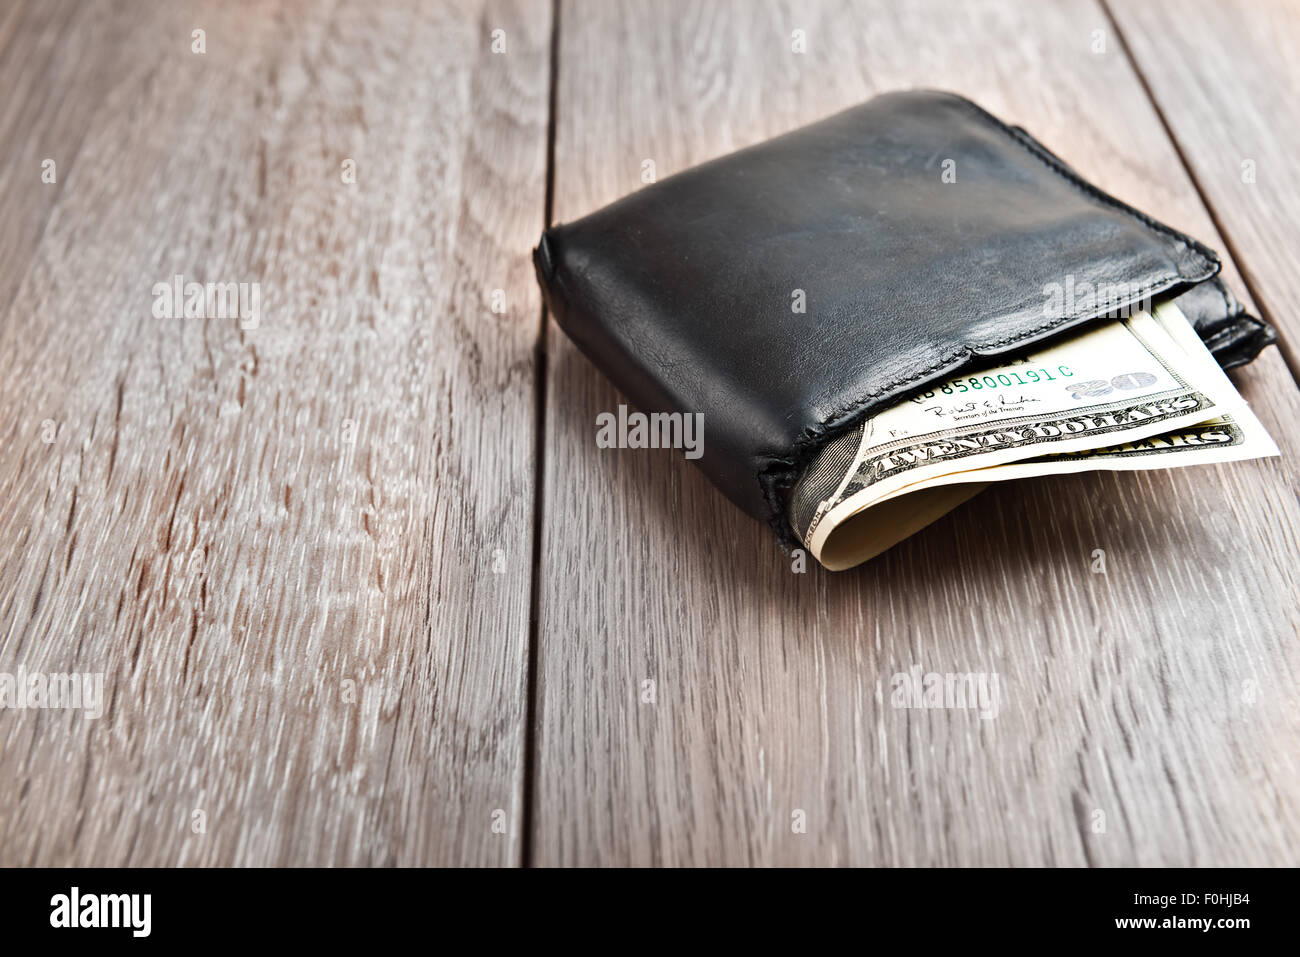 Wallet with hundred dollar banknotes, on wooden background - Stock Image